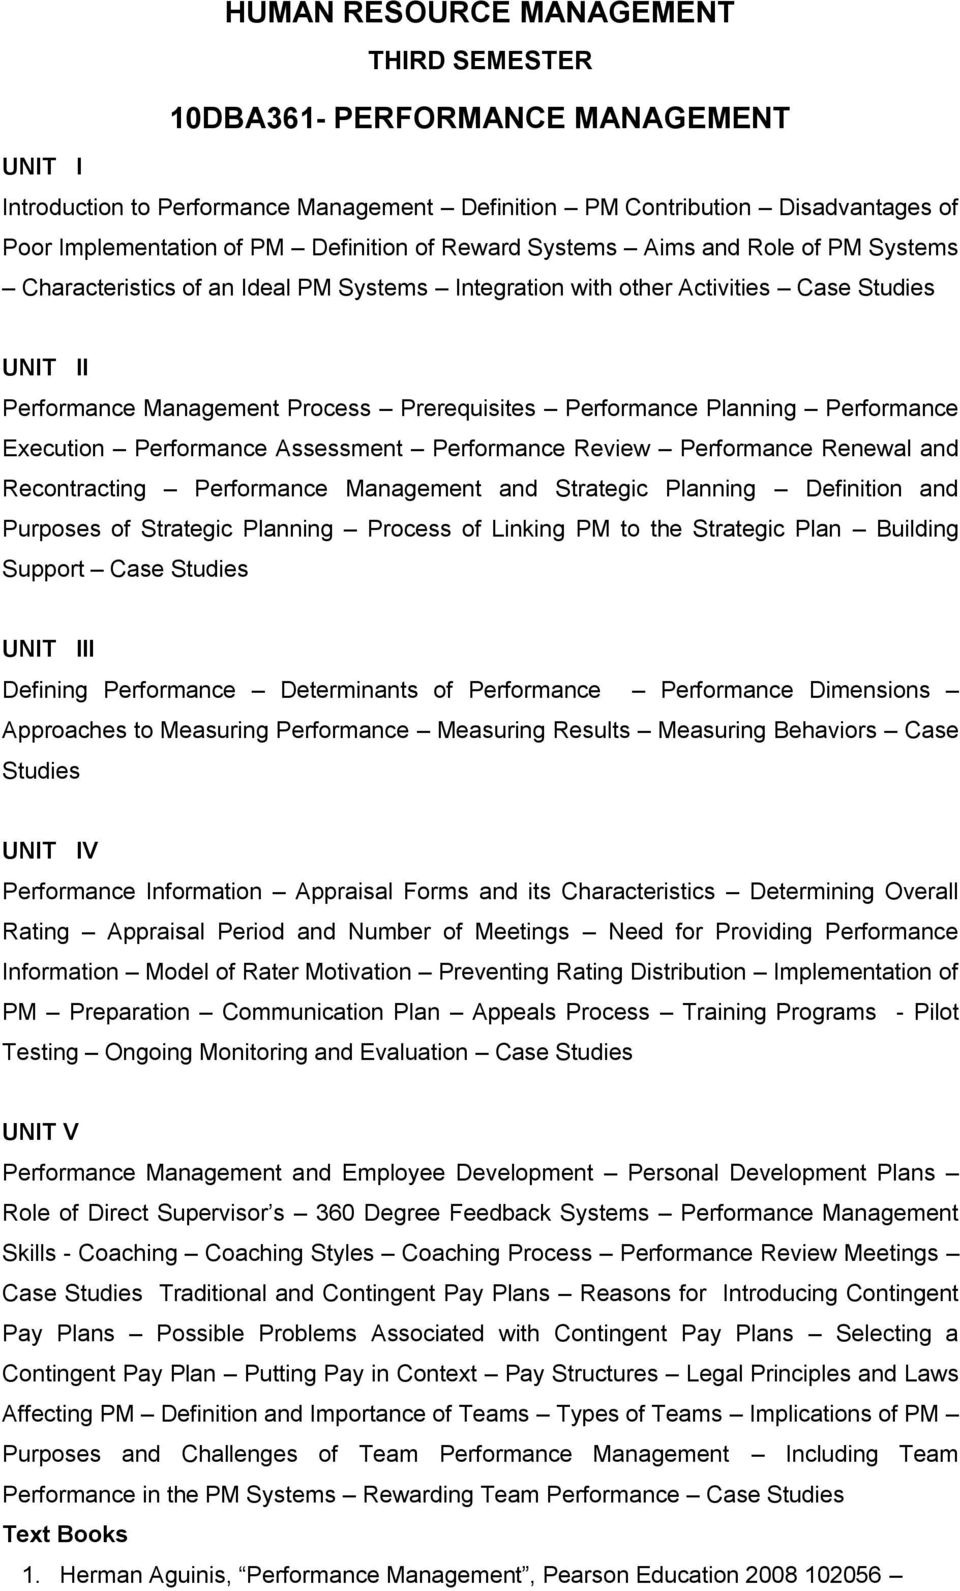 human resource management 10dba361- performance management - pdf